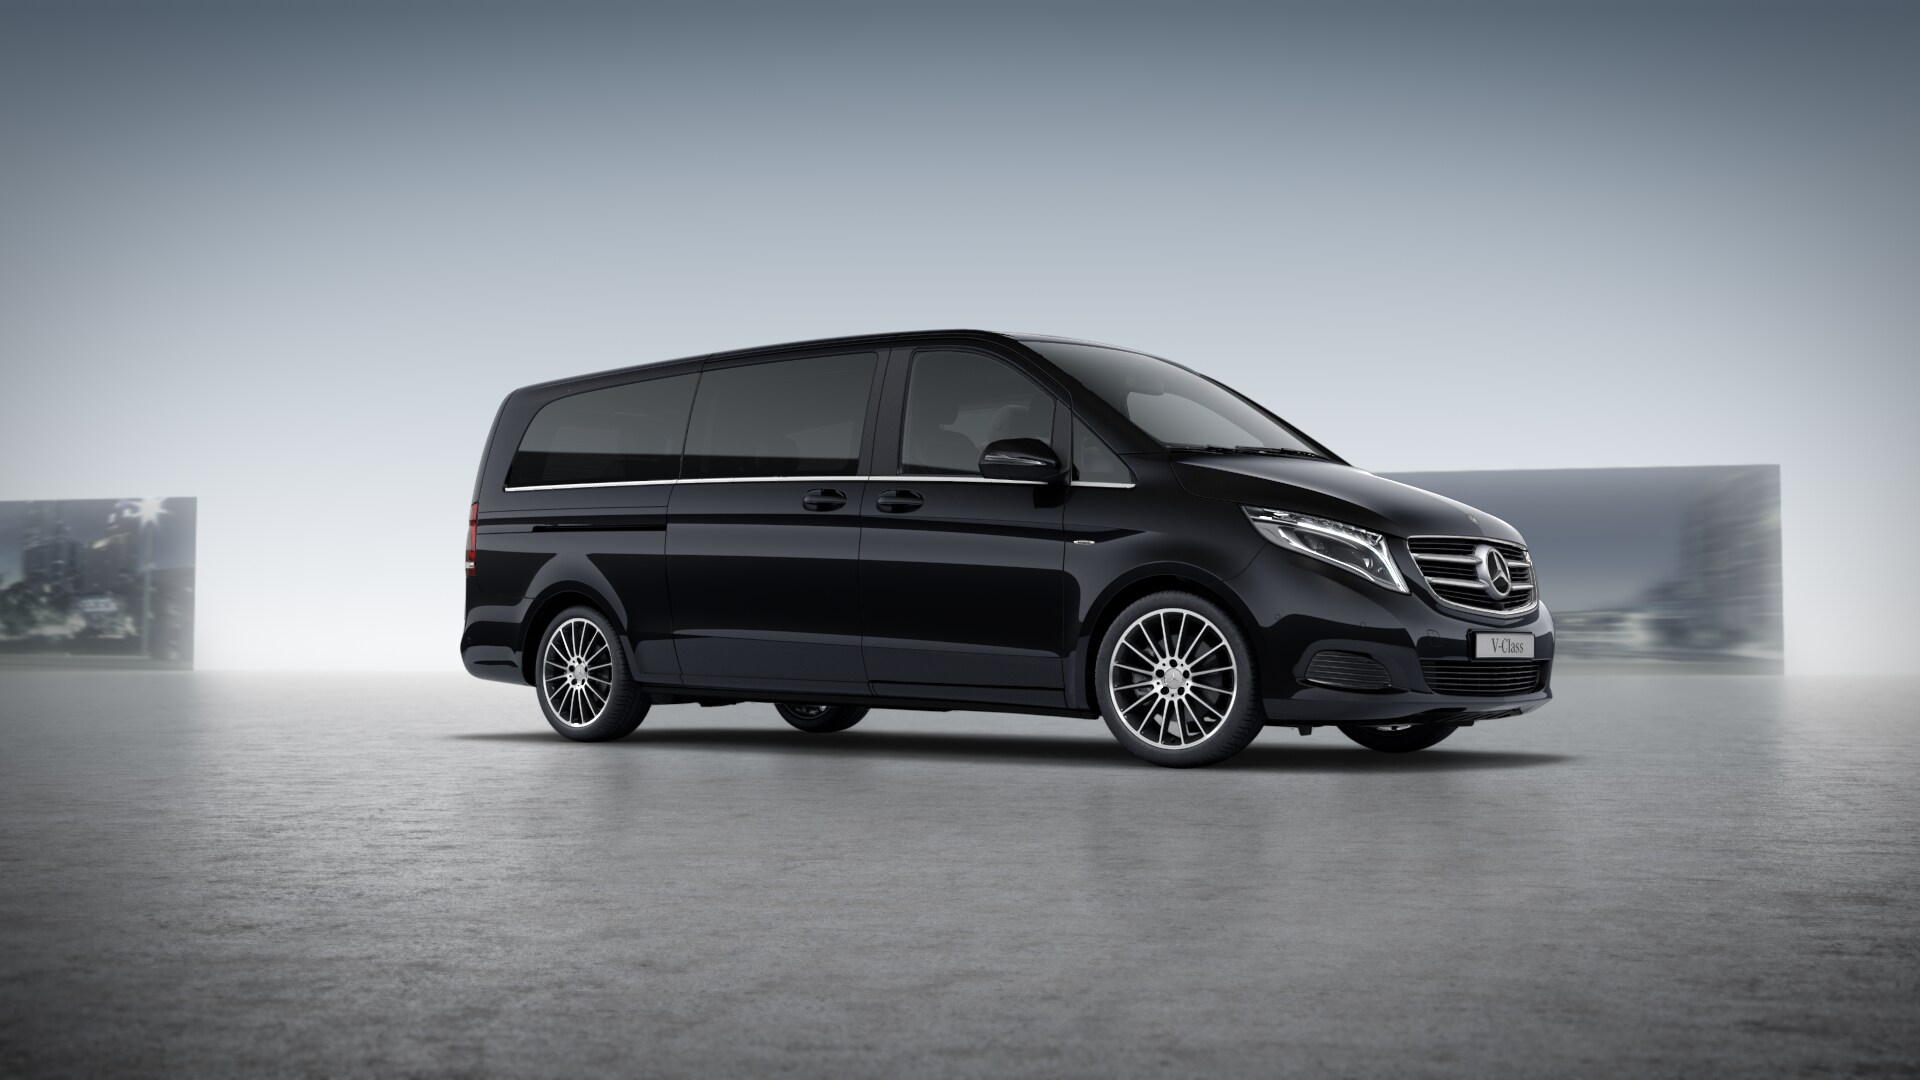 mercedes benz v klasse xl vip 4matic alphubel limousine. Black Bedroom Furniture Sets. Home Design Ideas